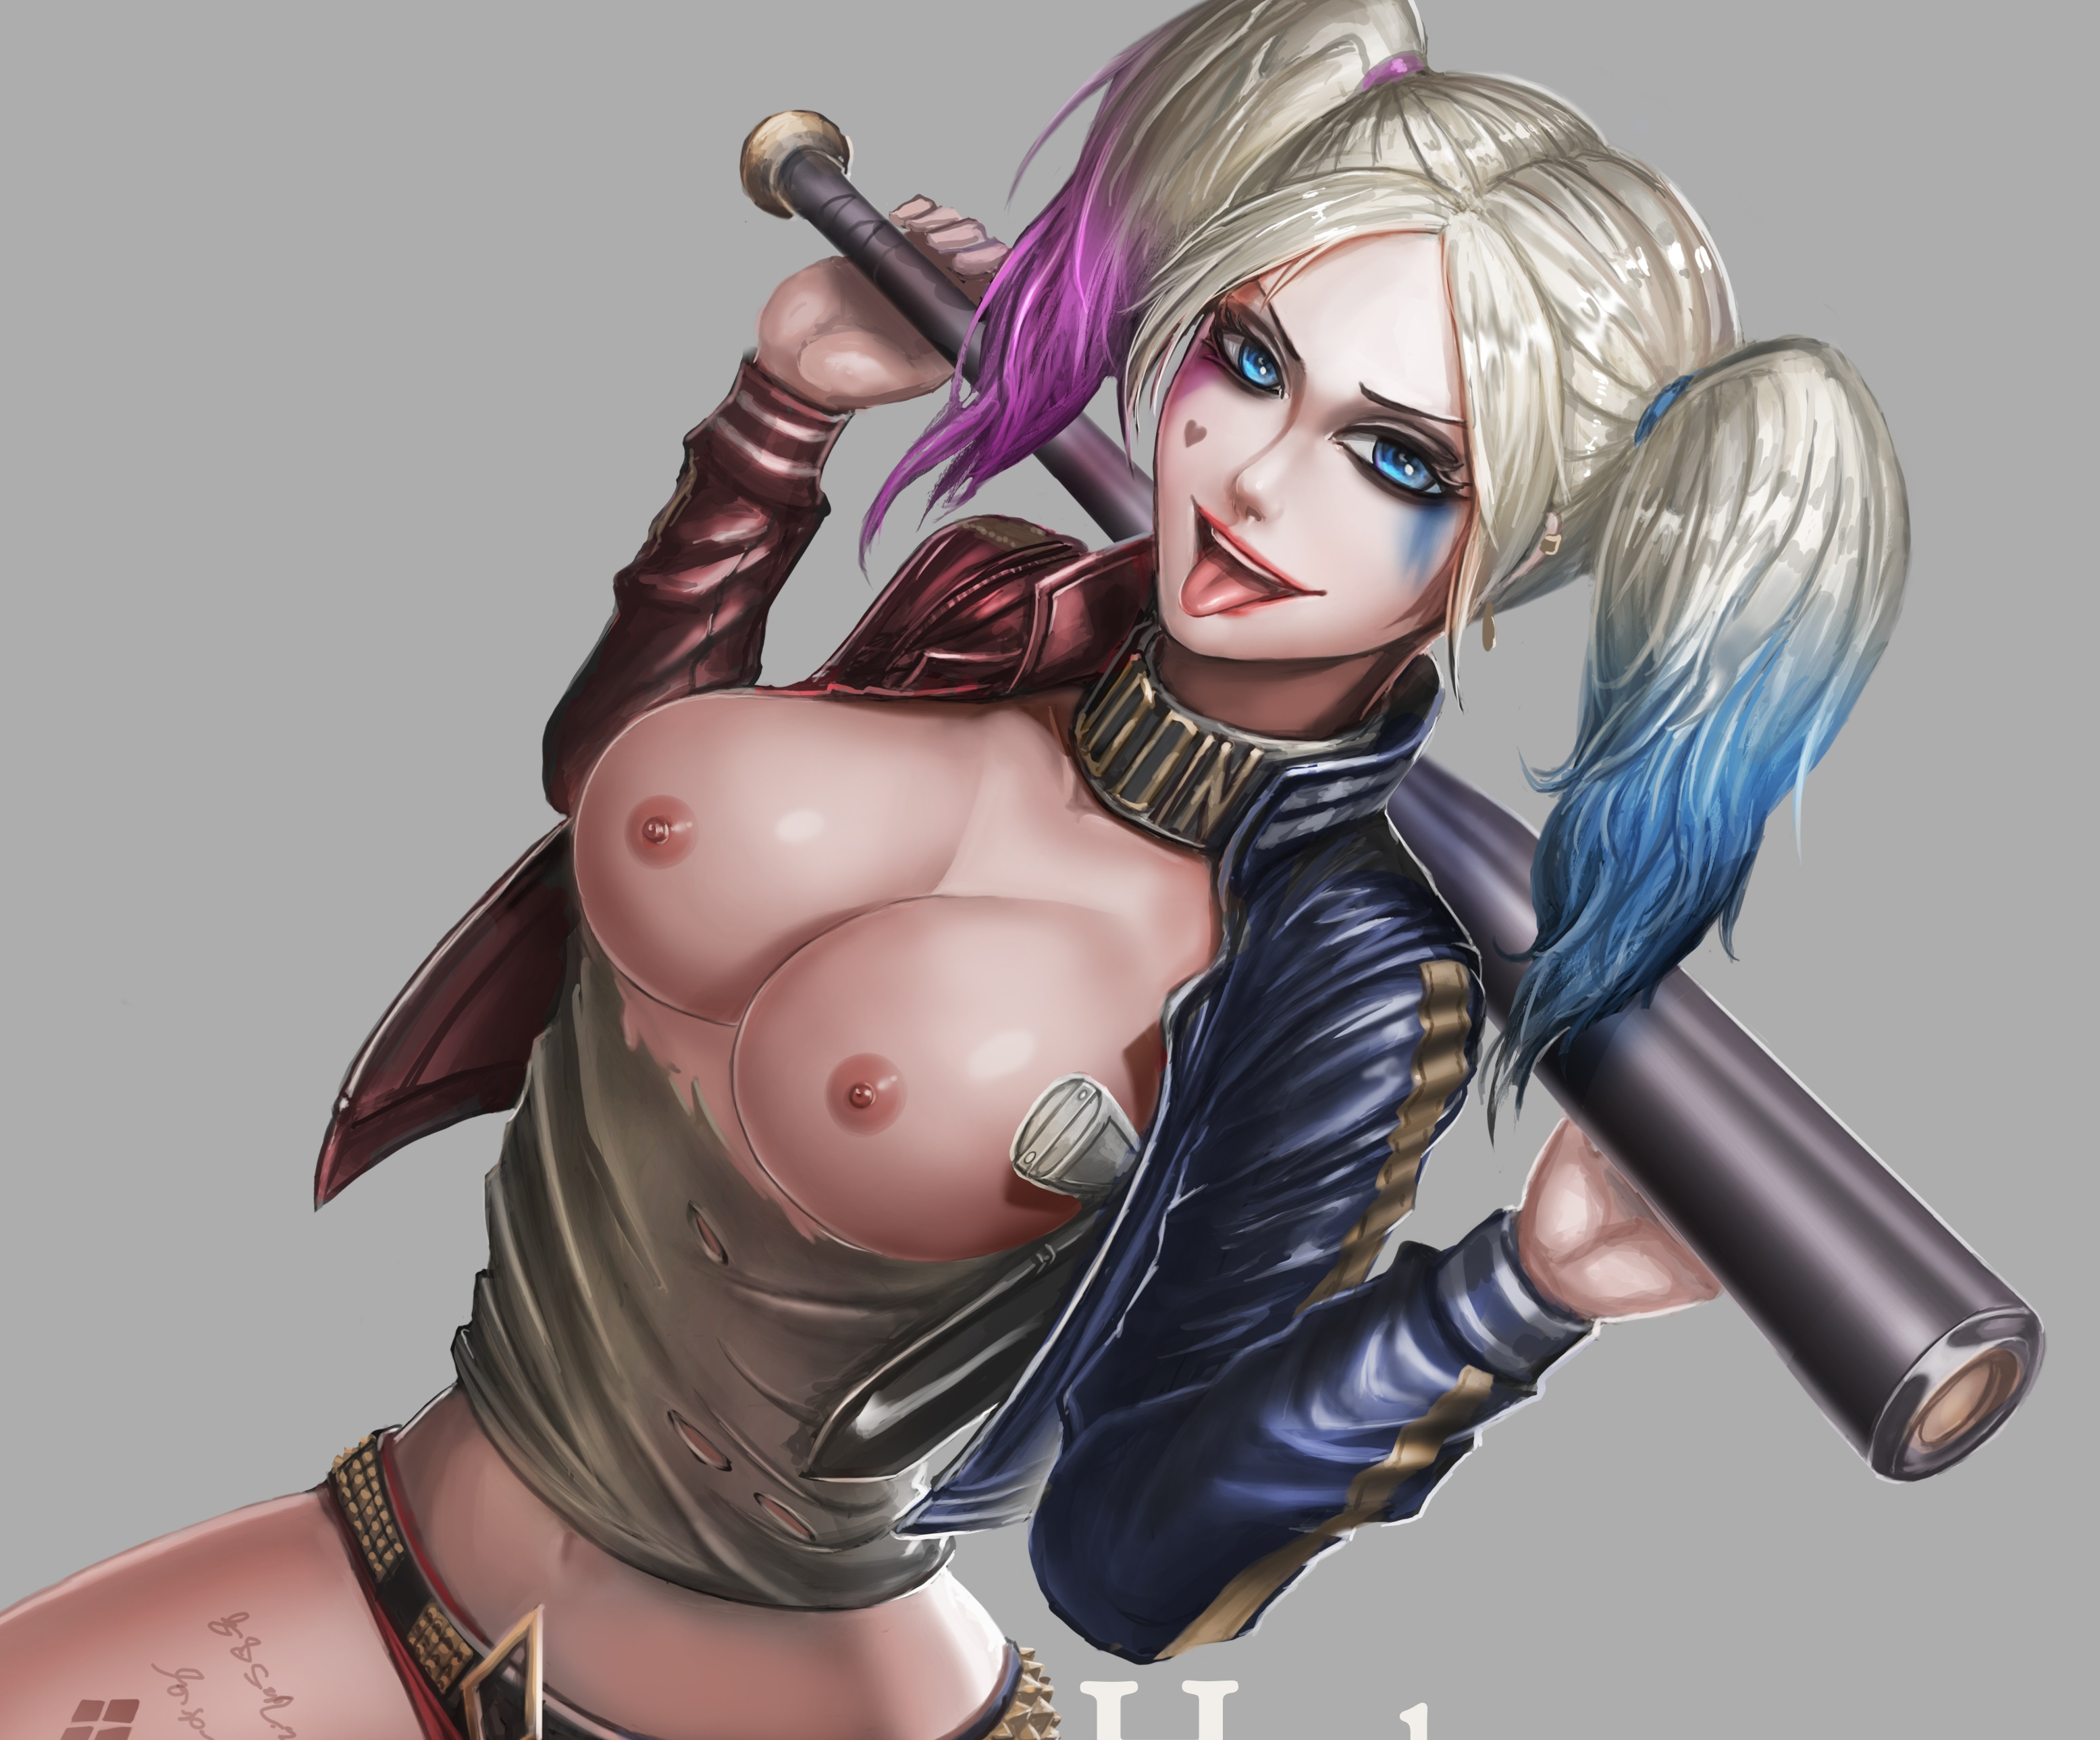 Harley quinn naked ass and tits Wallpaper Harley Quinn Boobs Tits Batman Desktop Wallpaper Fantasy Girls Id 234978 Ftopx Com